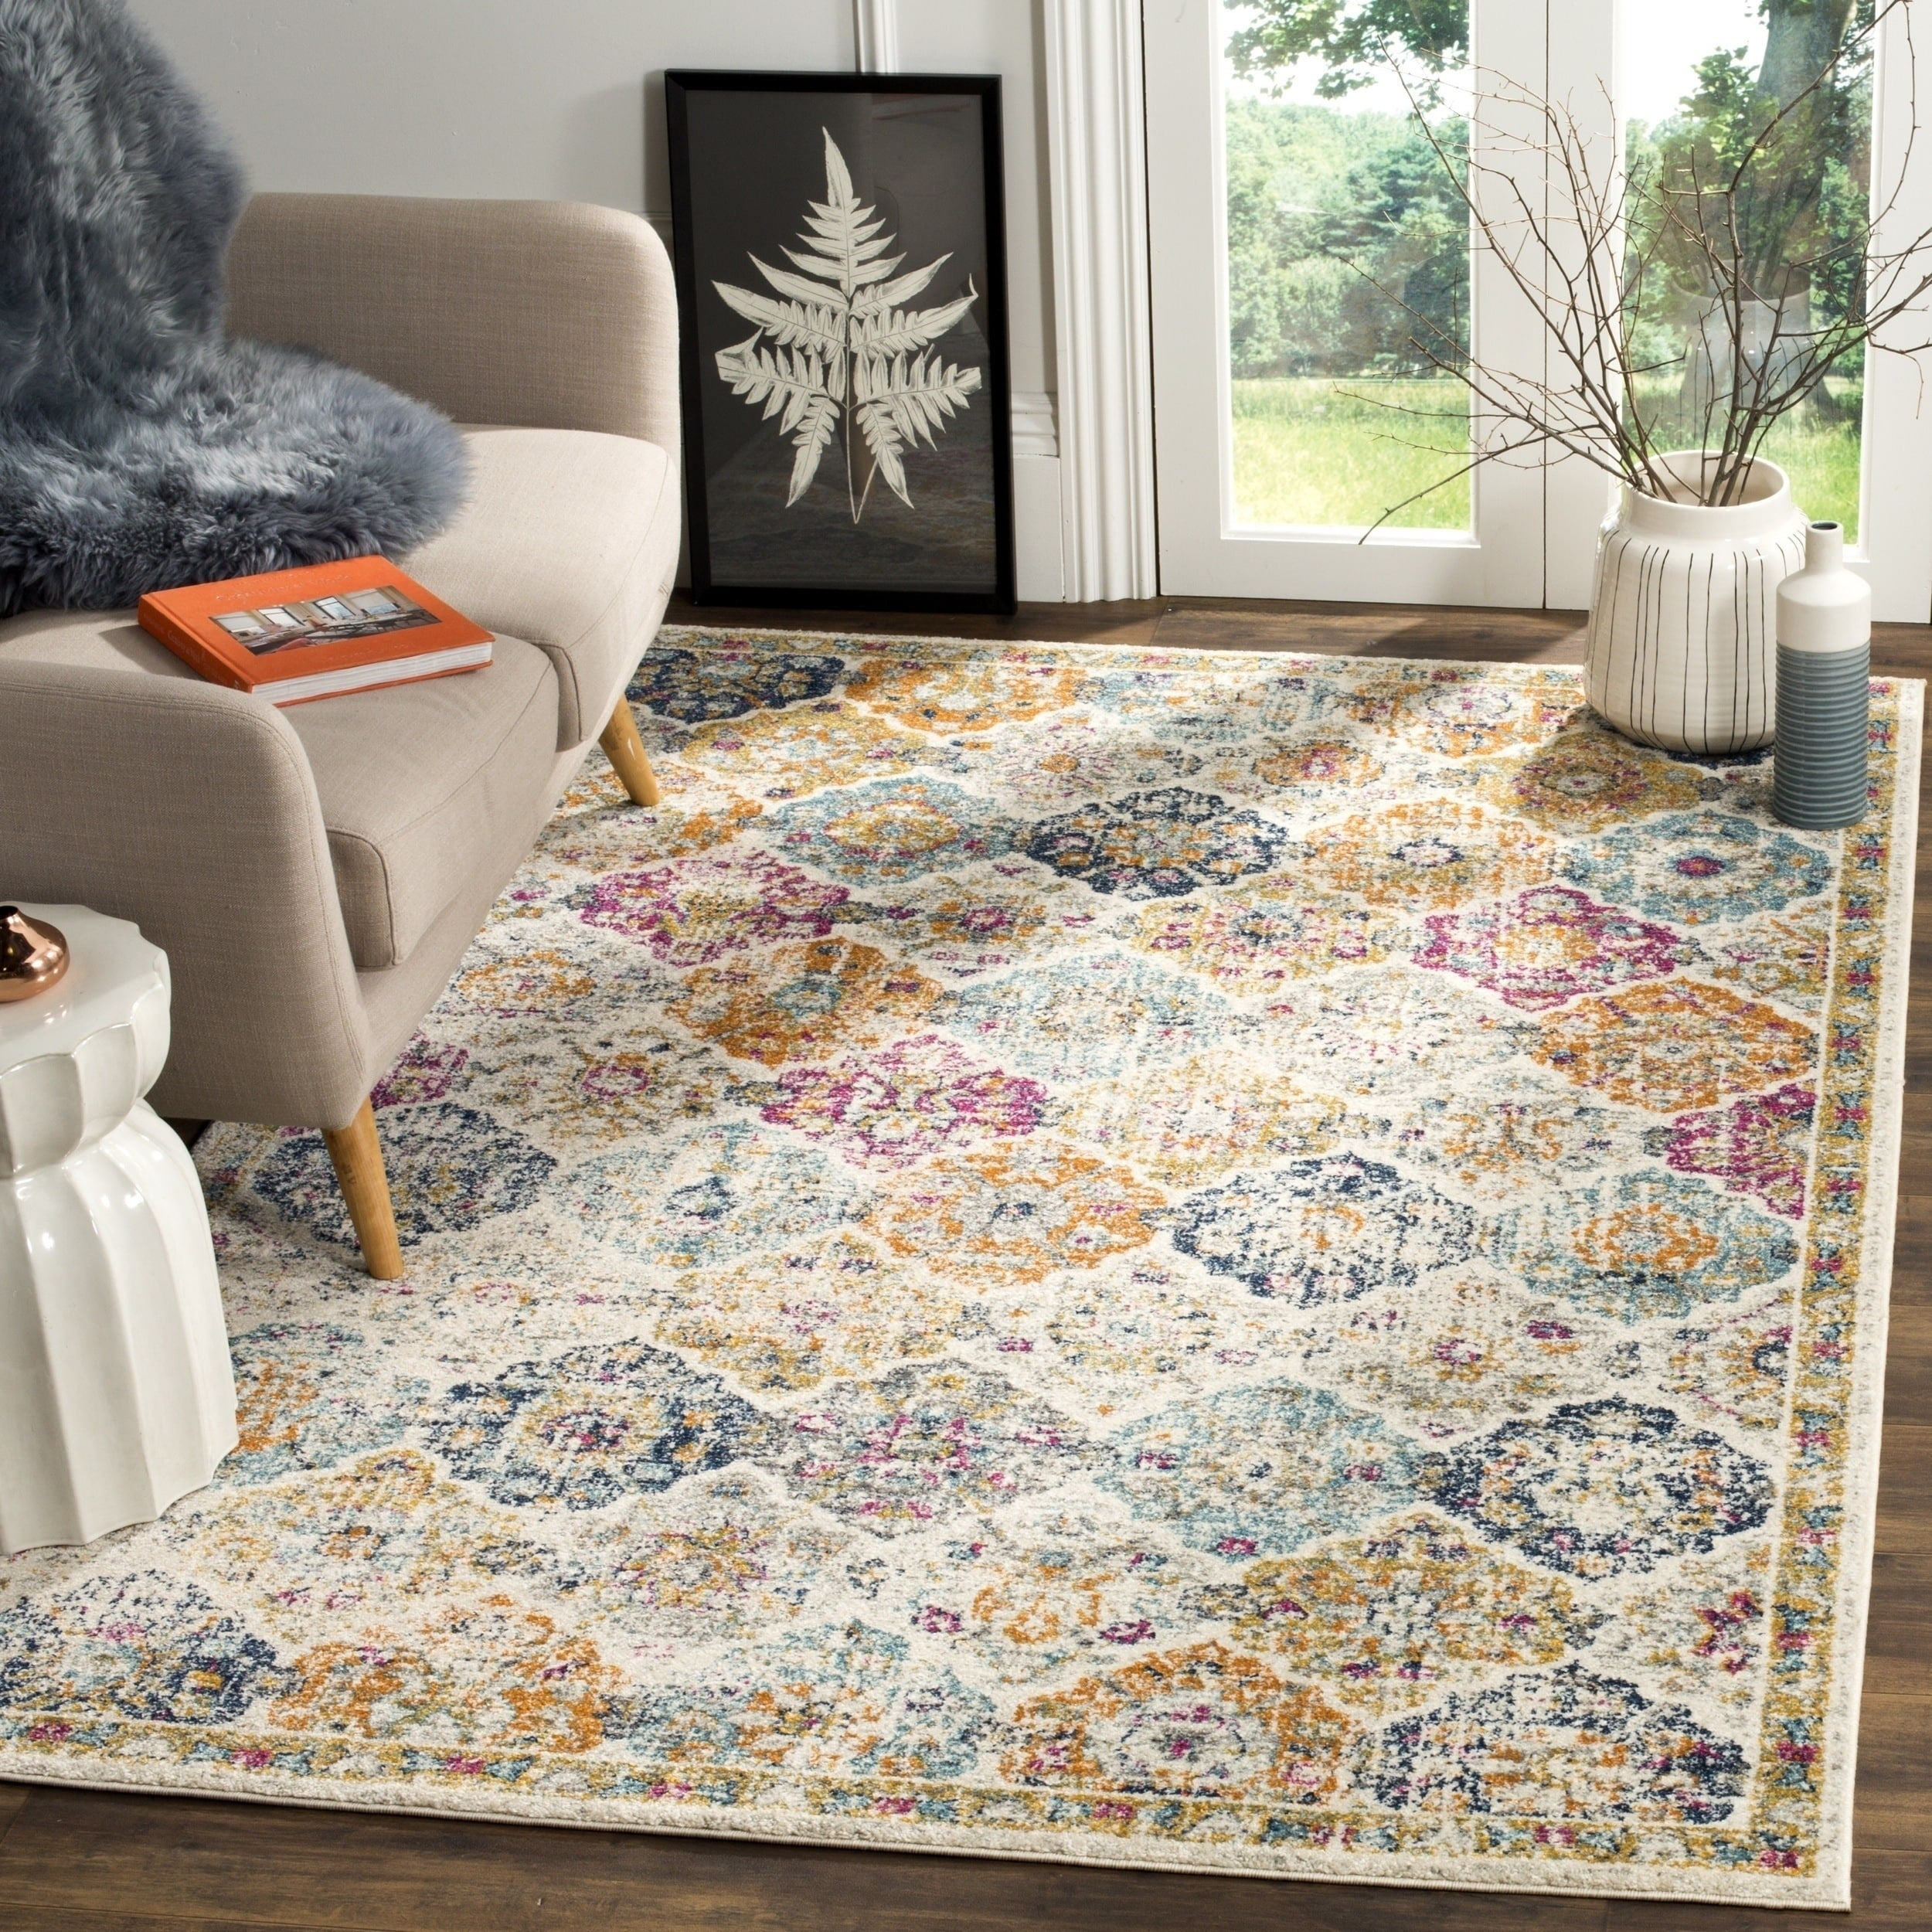 Safavieh Madison Bohemian Vintage Cream Multi Distressed Rug 8 X 10 On Free Shipping Today Com 12659869